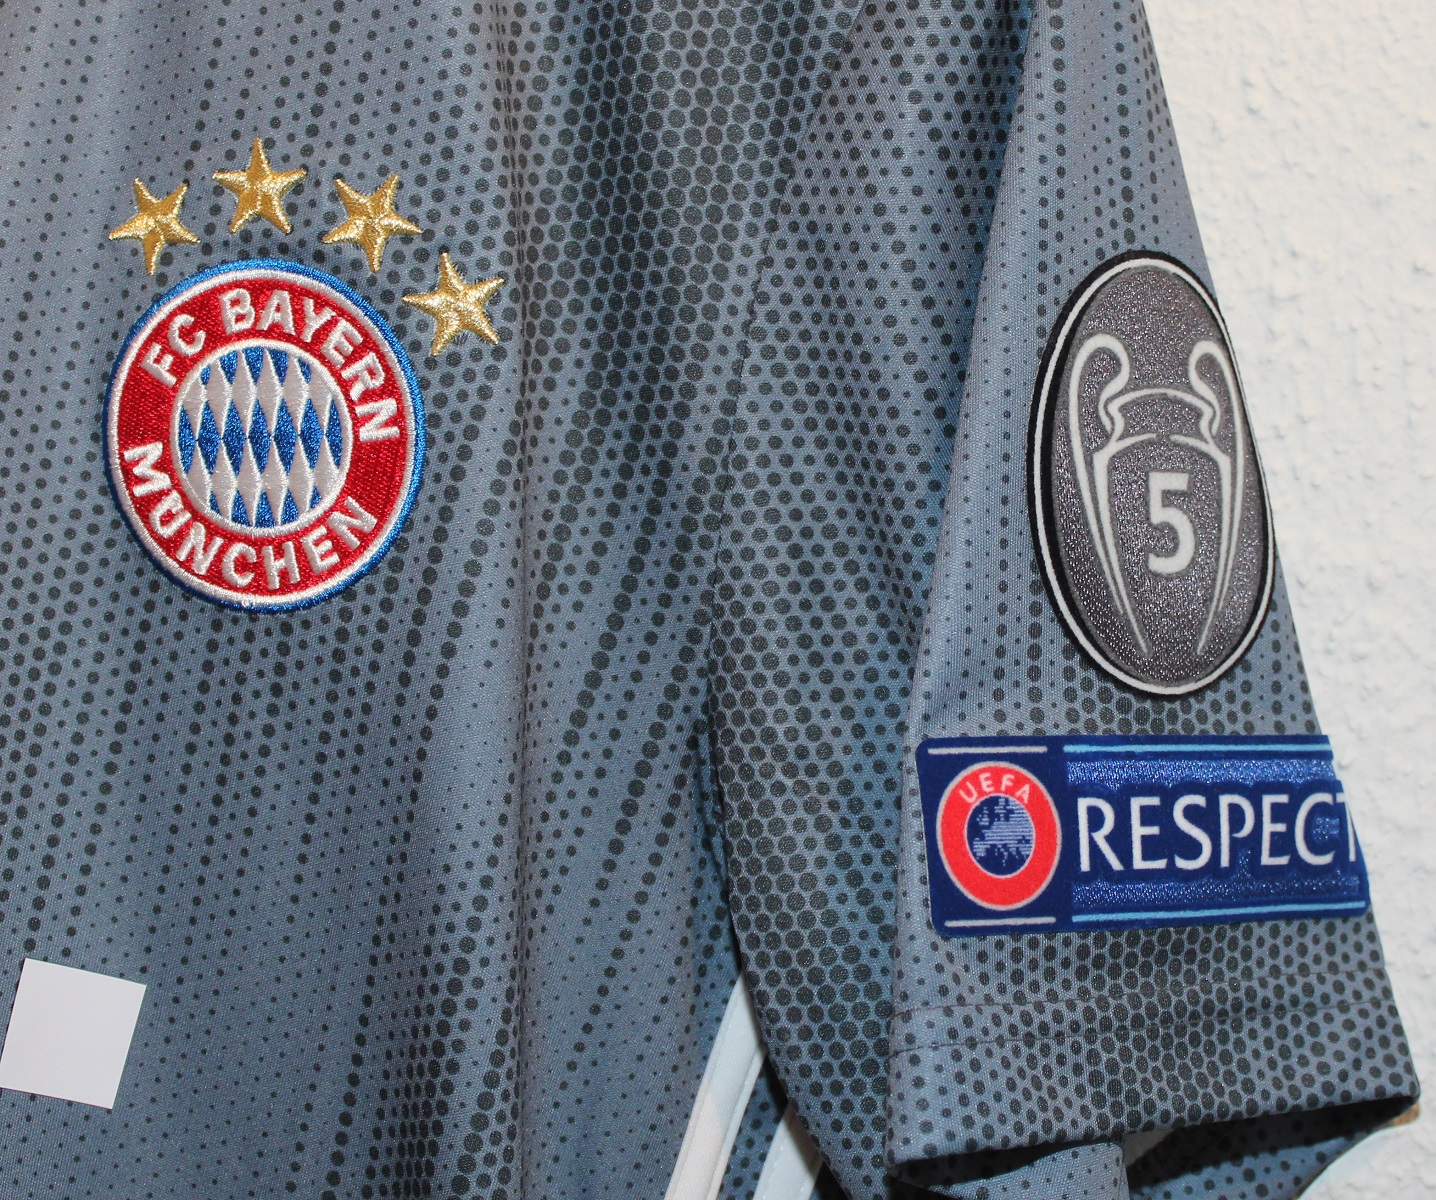 Bayern 5 Cup + Respect logoer